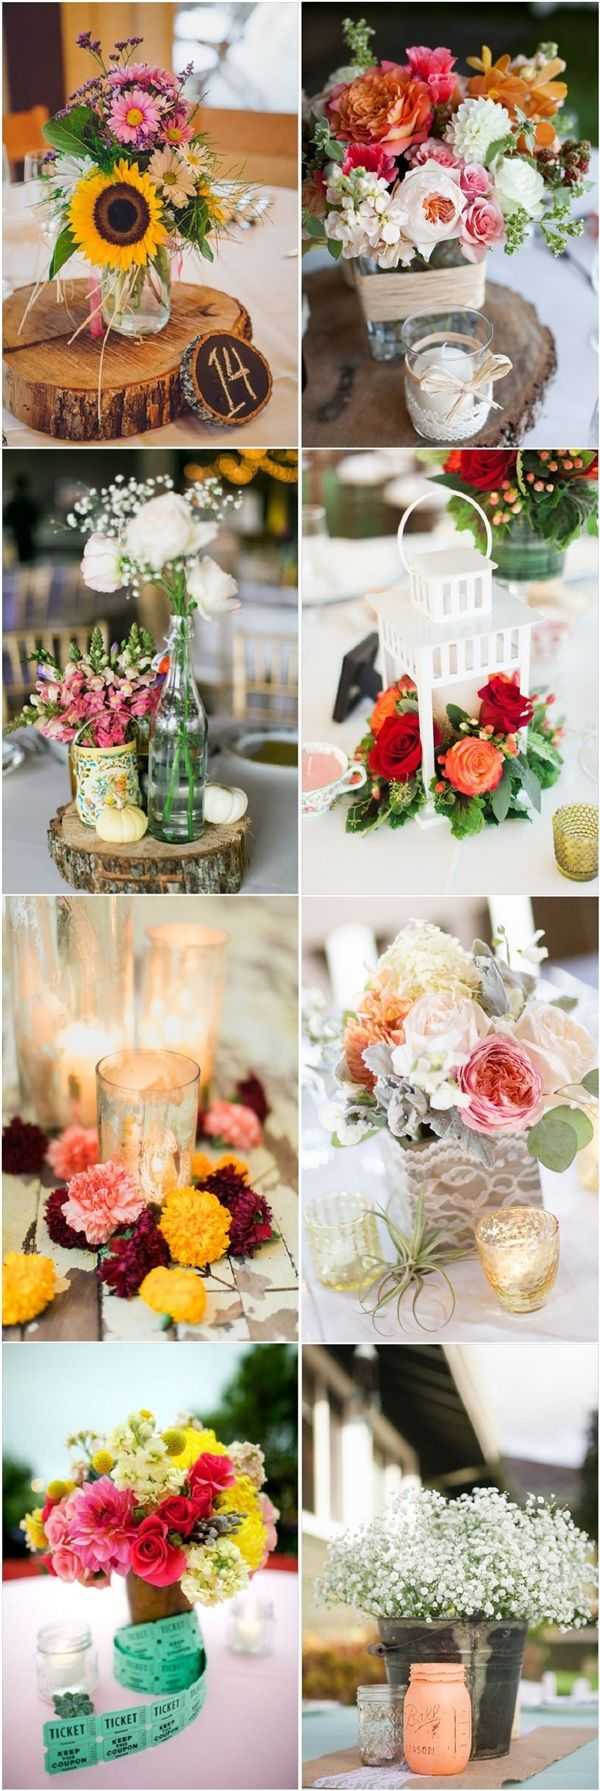 chic rustic wedding centerpiece decor ideas | Deer Pearl Flowers